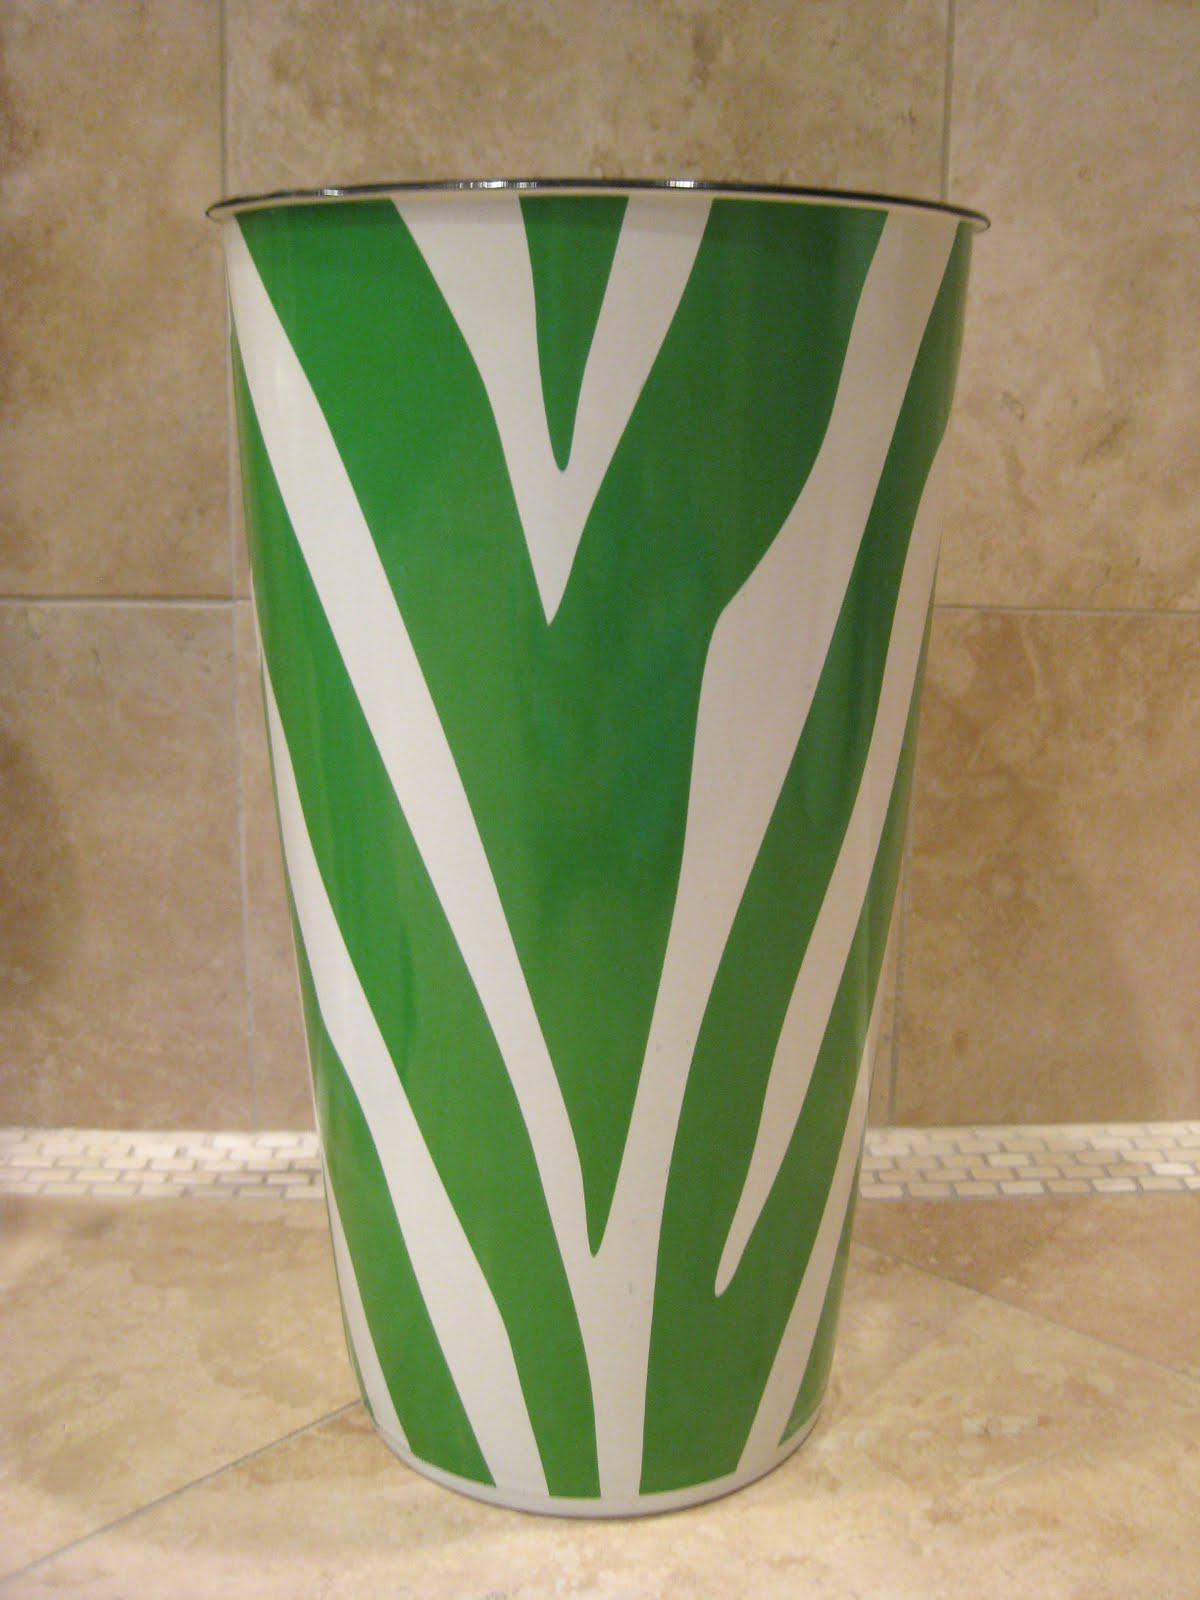 They are tall so trash settles to the bottom out of sight heres a fun kelly green zebra striped one